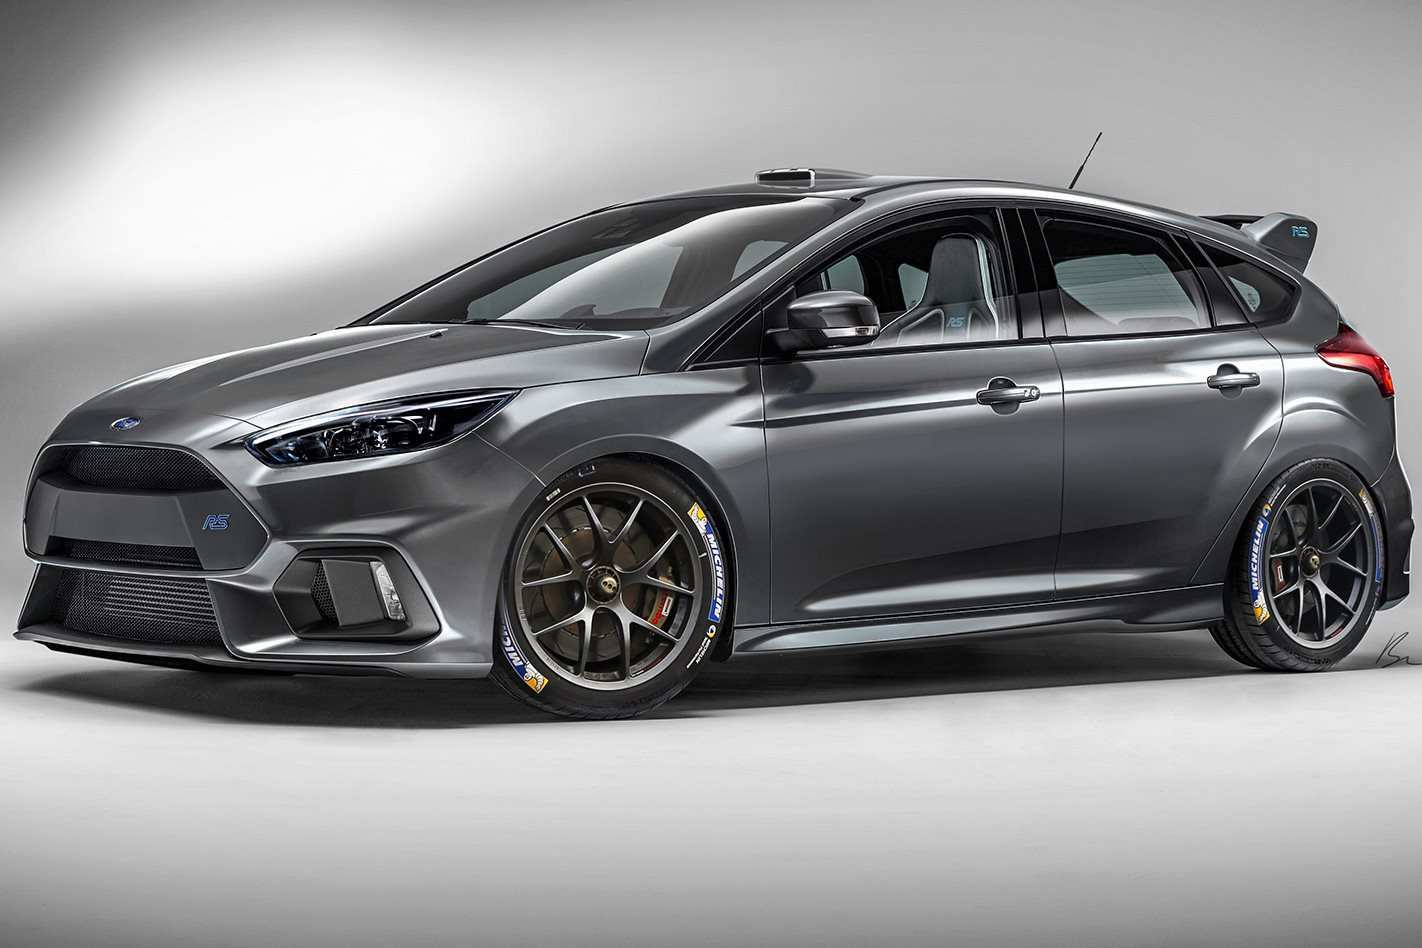 69 The Best 2019 Ford Focus Rs500 Spesification